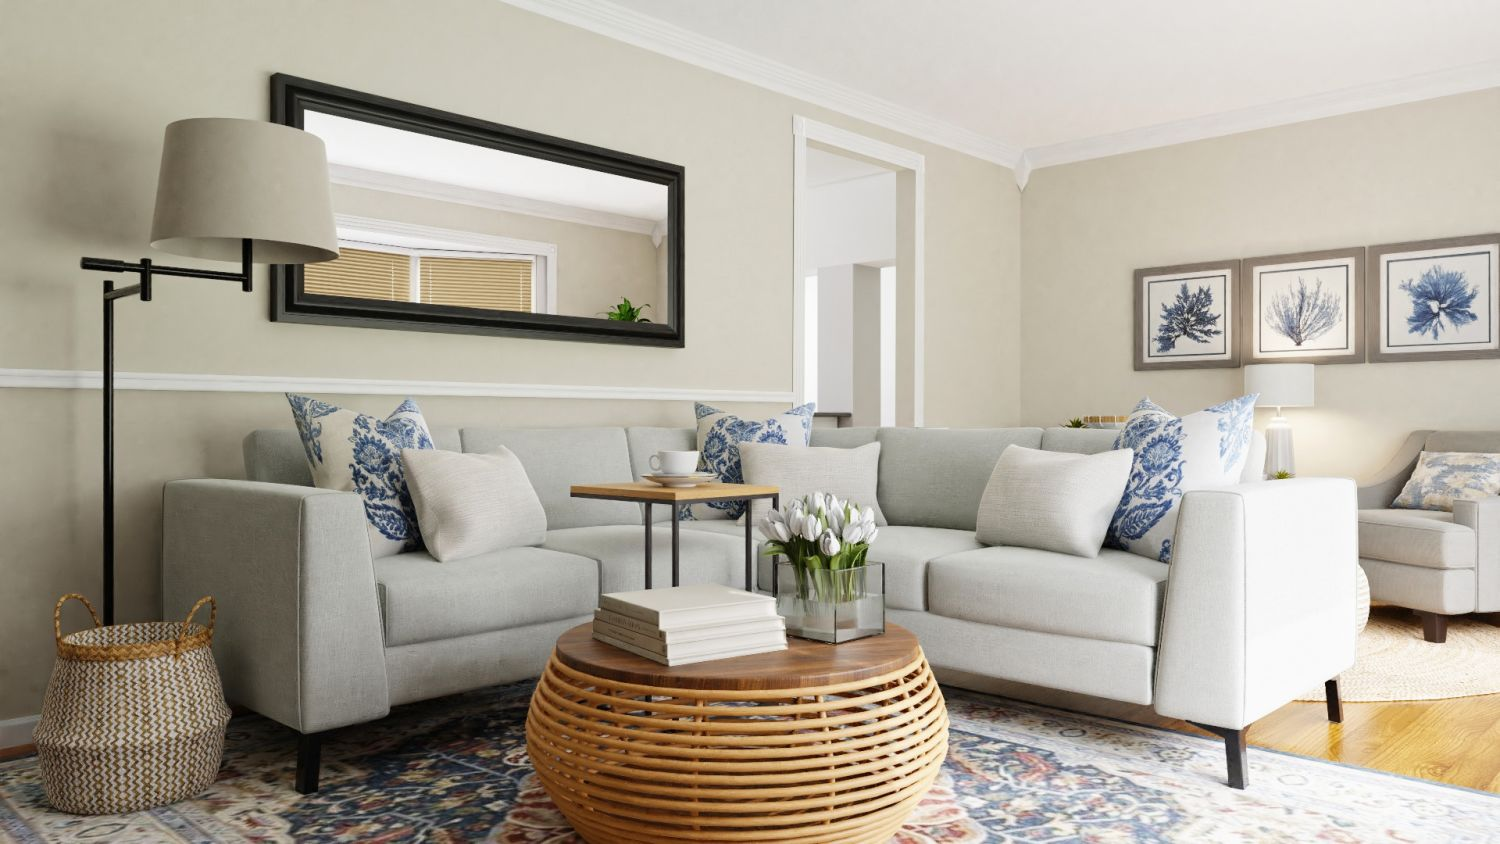 Private Reading Nook: Coastal Transitional Living Room Design By Spacejoy